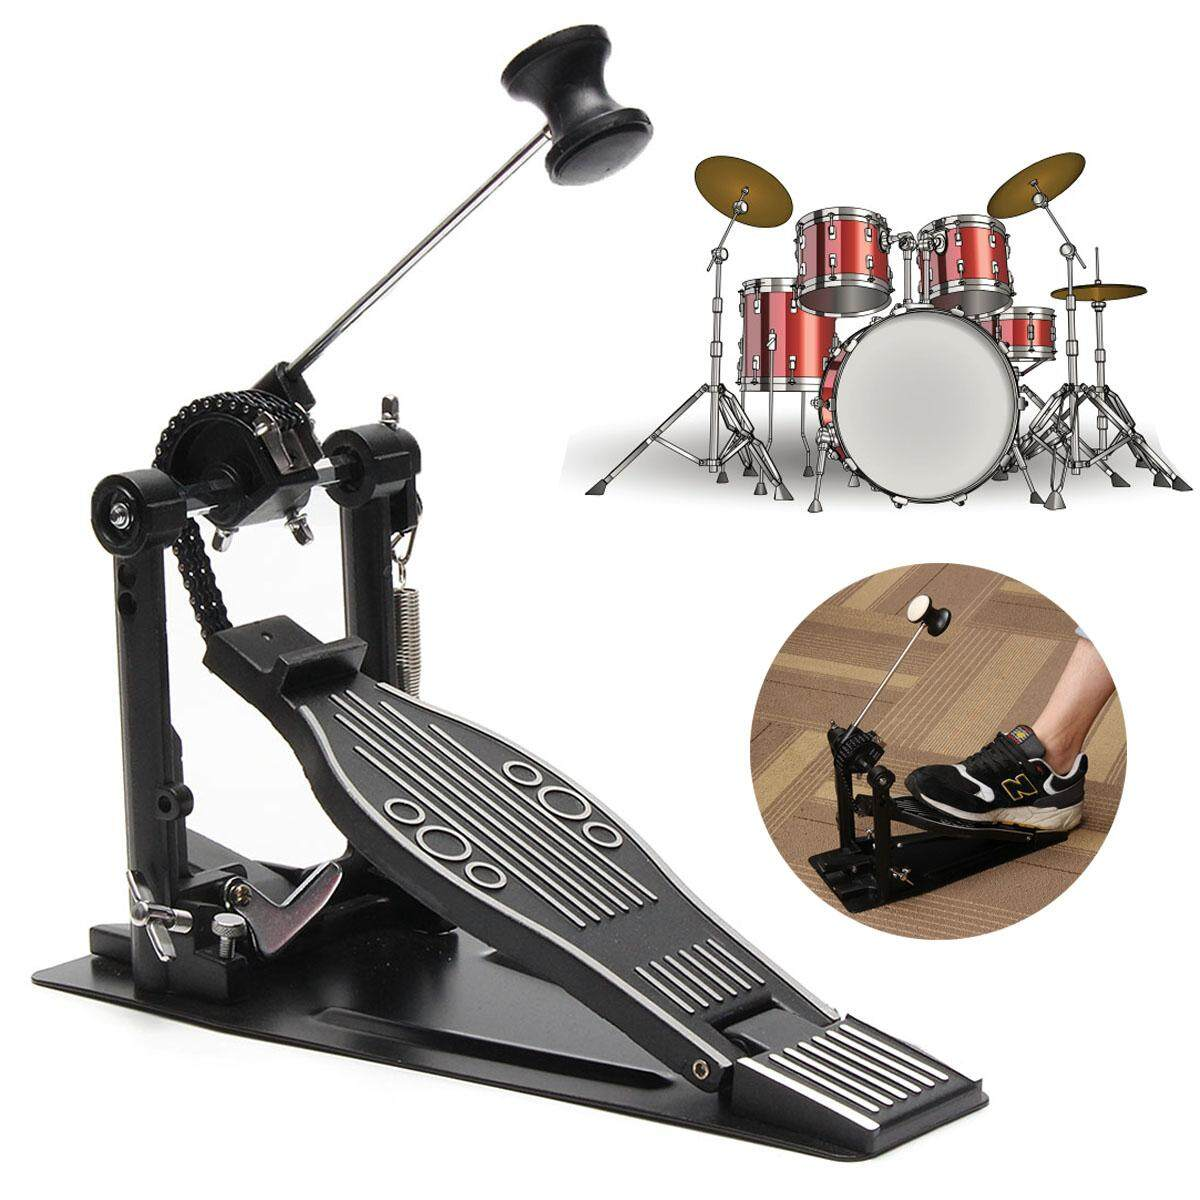 Drum Pedal Percussion Single Foot Kick Bass Drum Pedal Chain Drive - intl